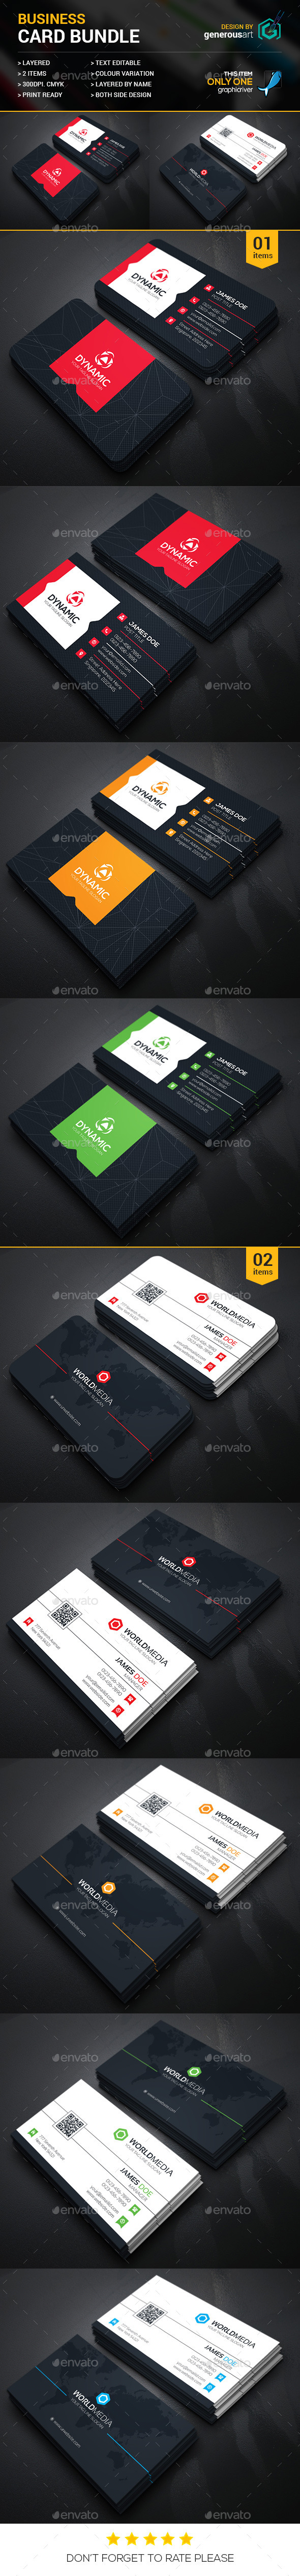 Business Card Bundle 2 in 1 Vol 13